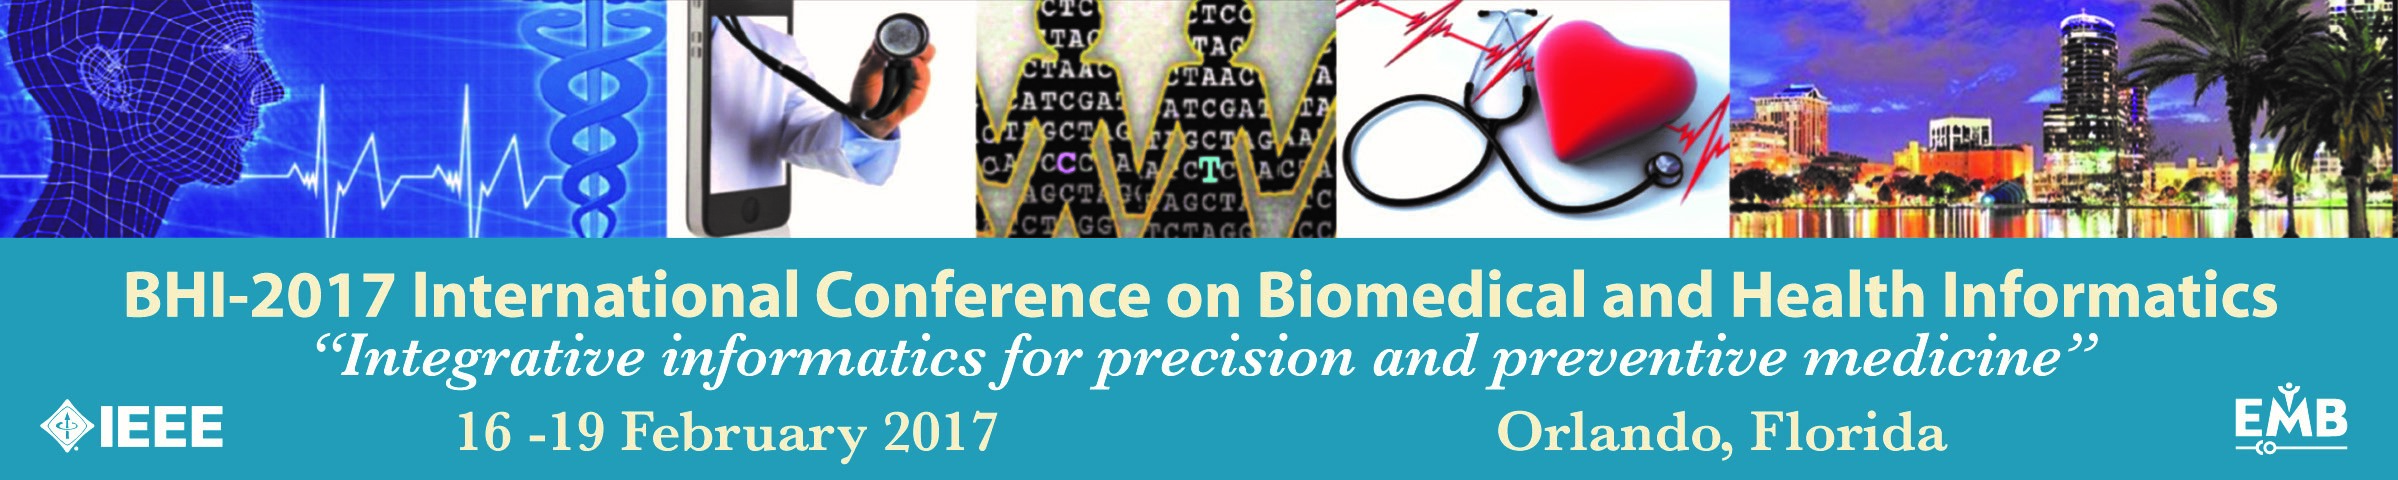 BHI - 2017 International Conference on Biomedical and Health Informatics